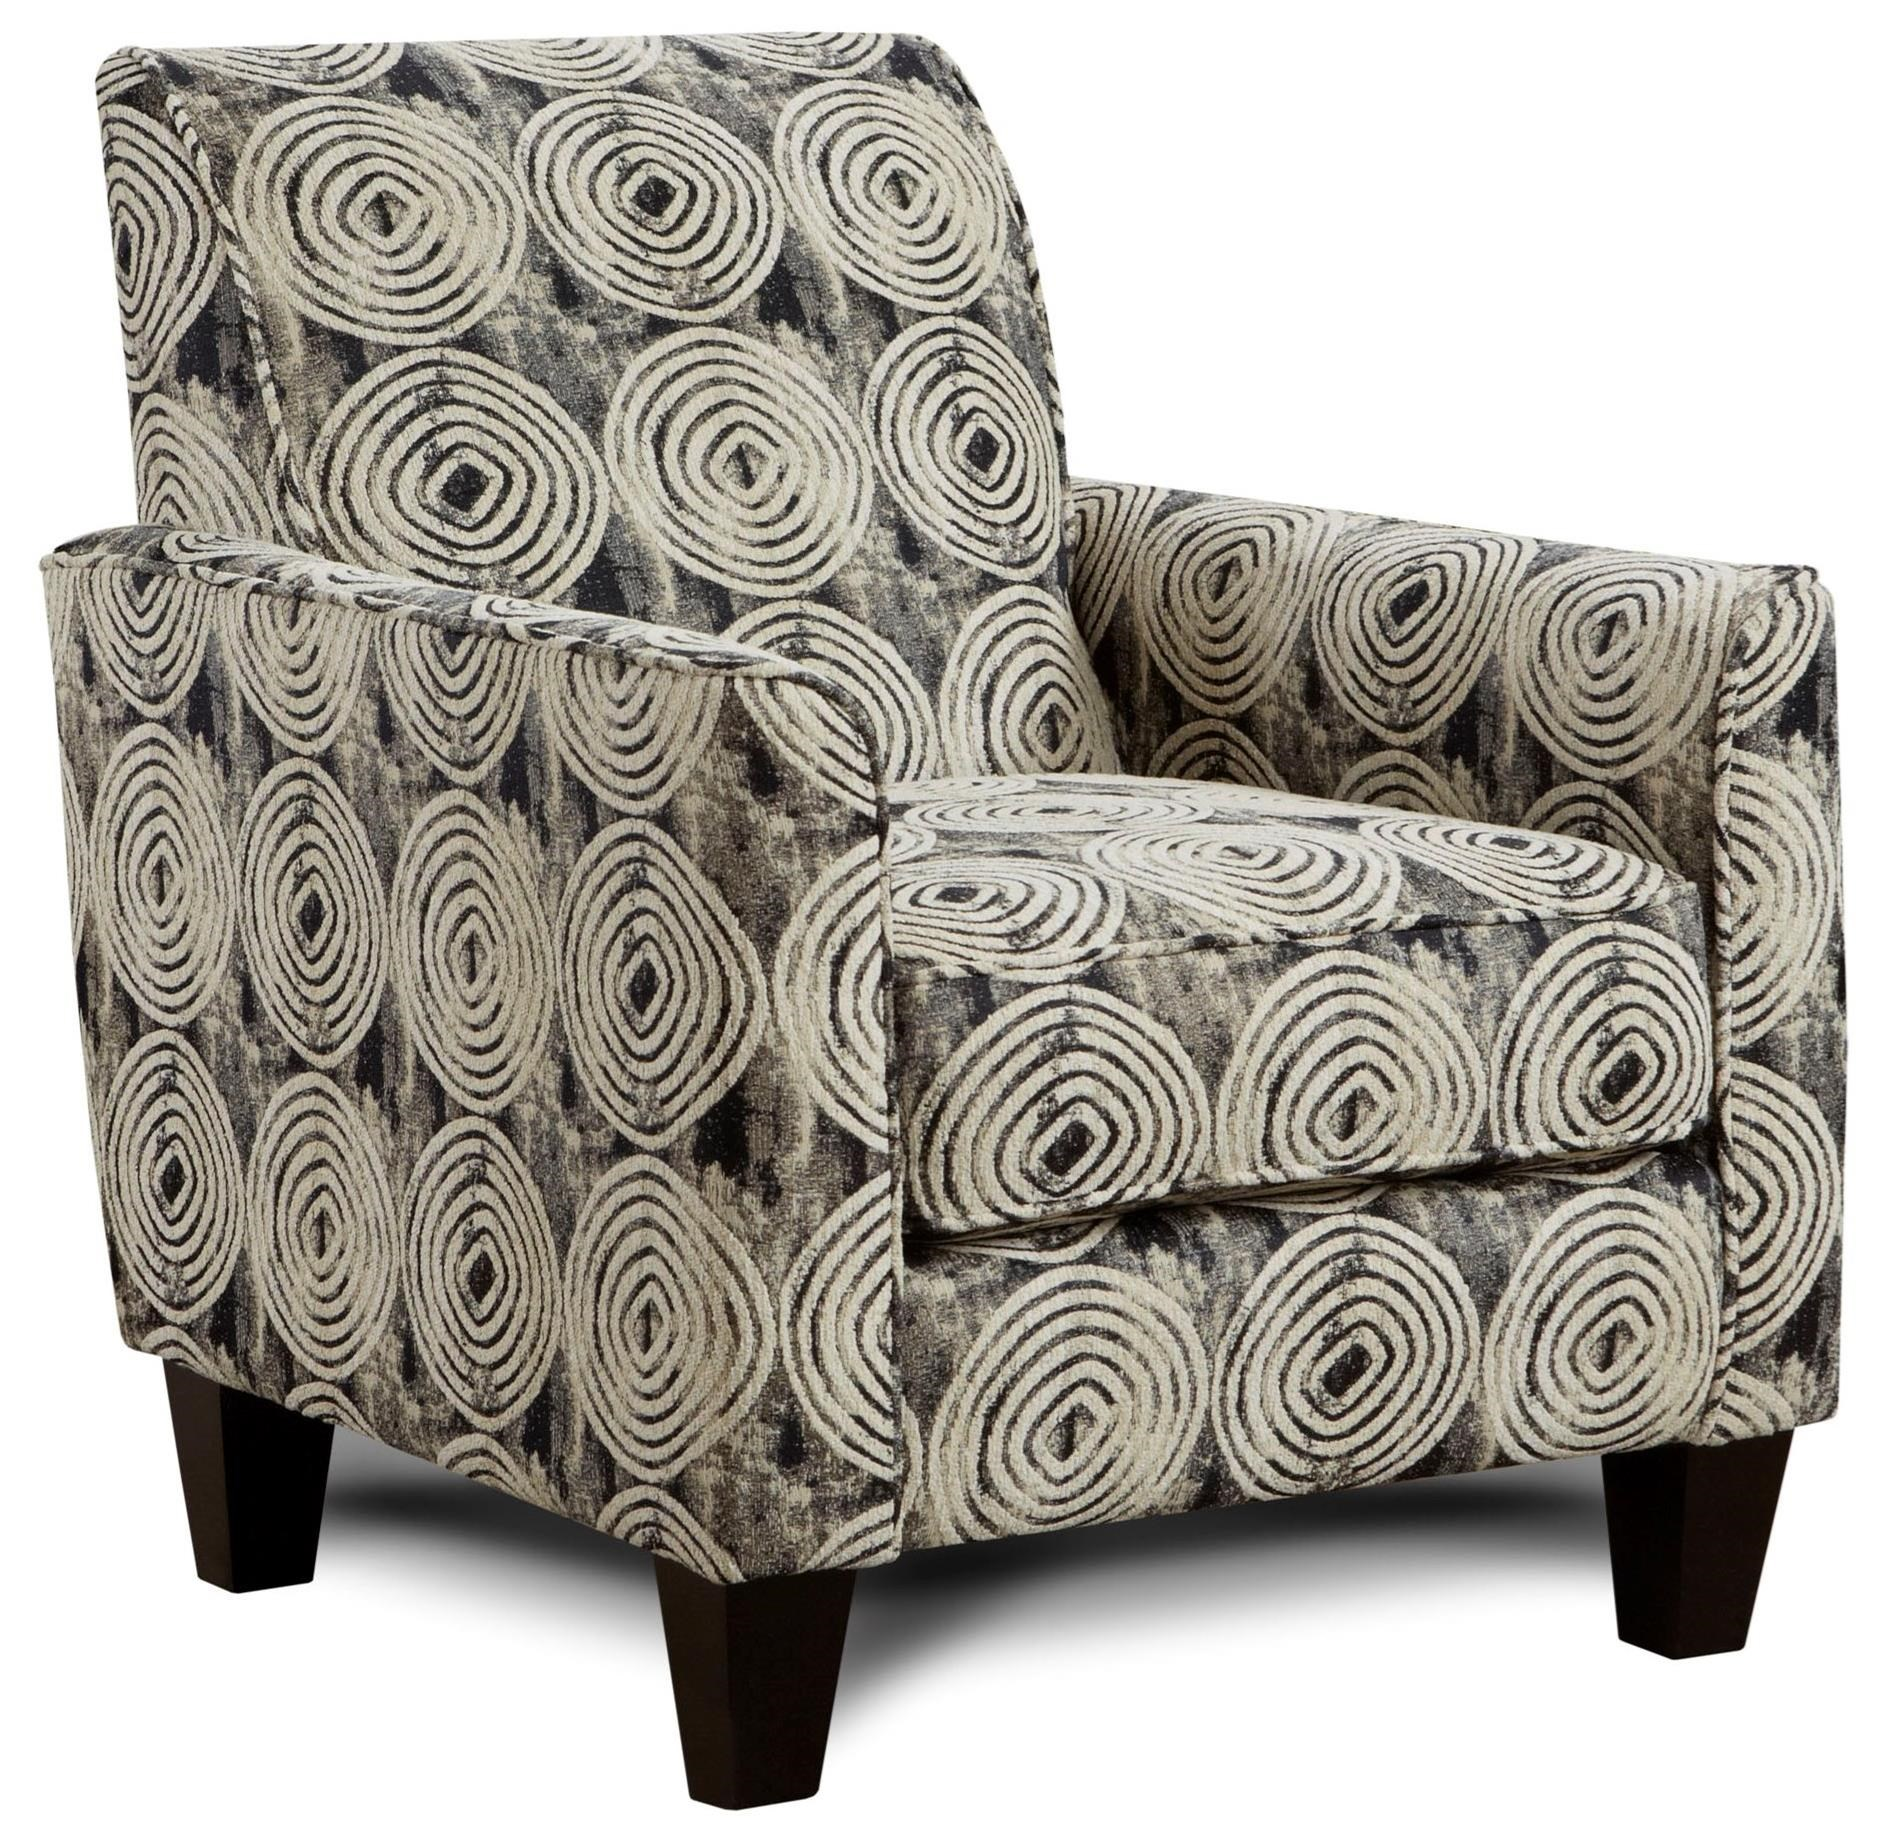 Fusion Furniture 722 Chair - Item Number: 722Spiral Onyx